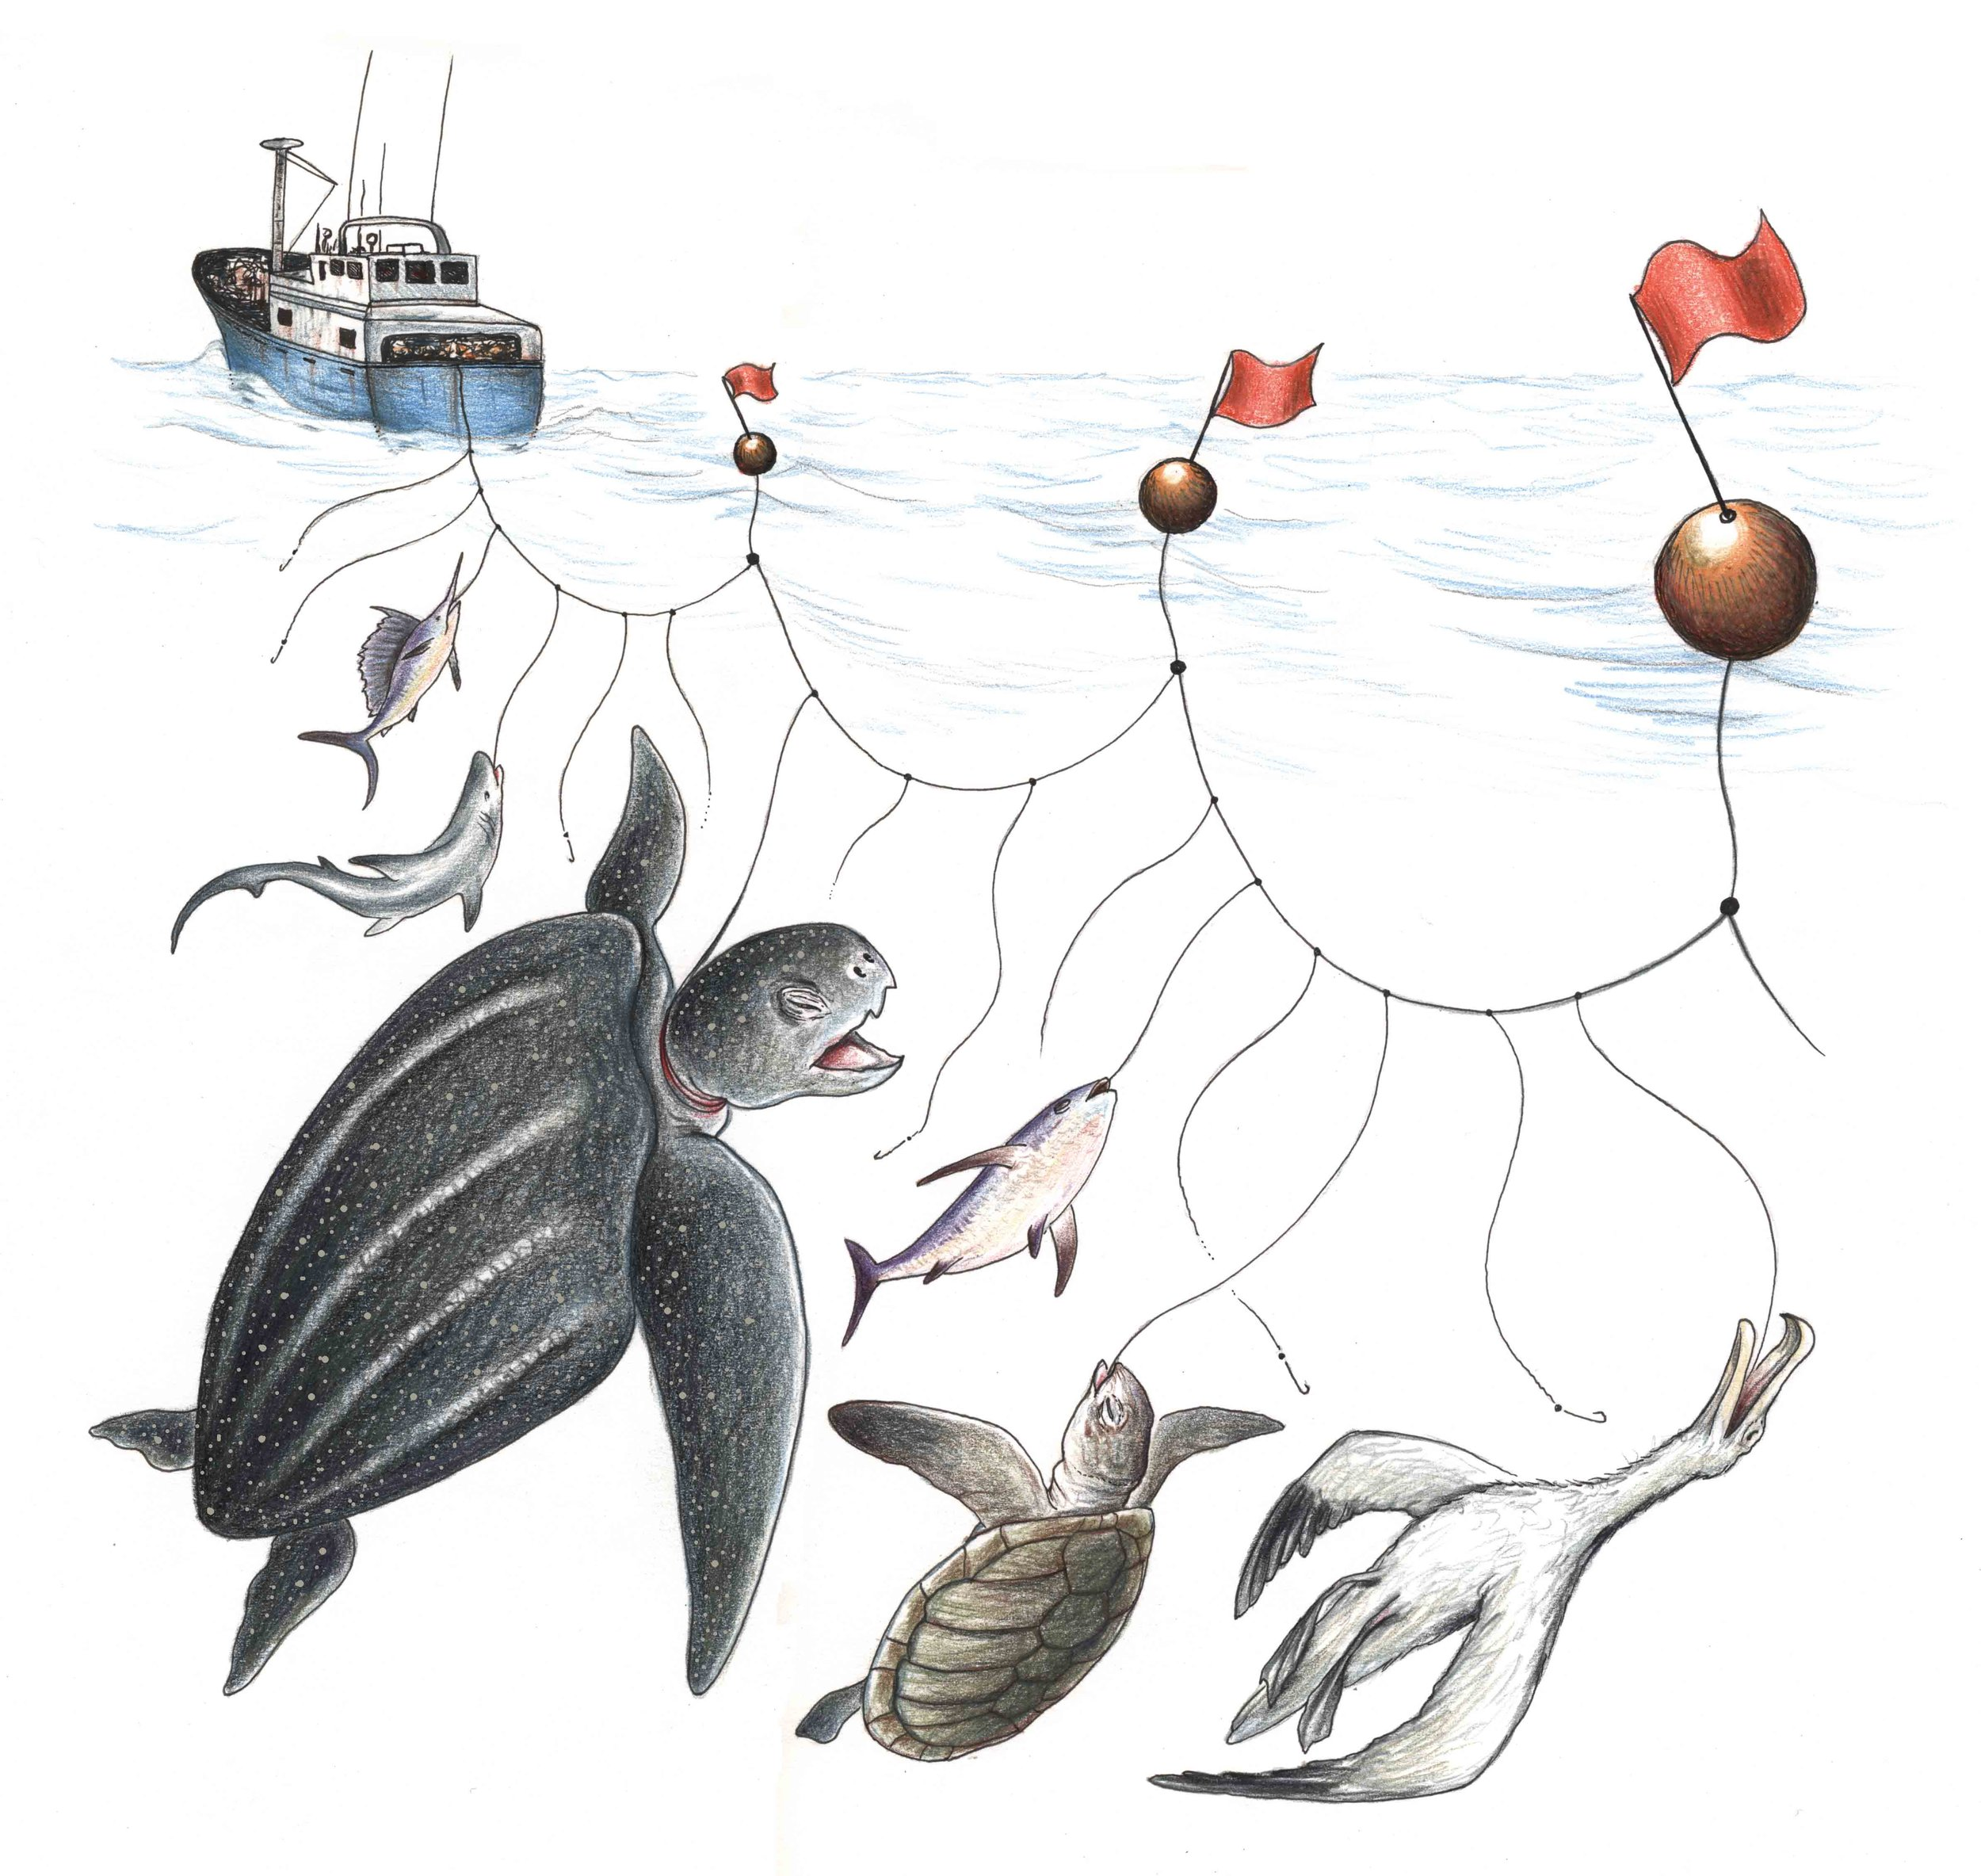 The billions of hooks set on longlines throughout the world's oceans each year injure and kill millions of animals other than the fishers' targeted fish species. Sea turtles, sharks, albatross and other seabirds, and dolphins, seals and other marine mammals are among the victims of longline fishing. © STEPHEN NASH / CONSERVATION INTERNATIONAL